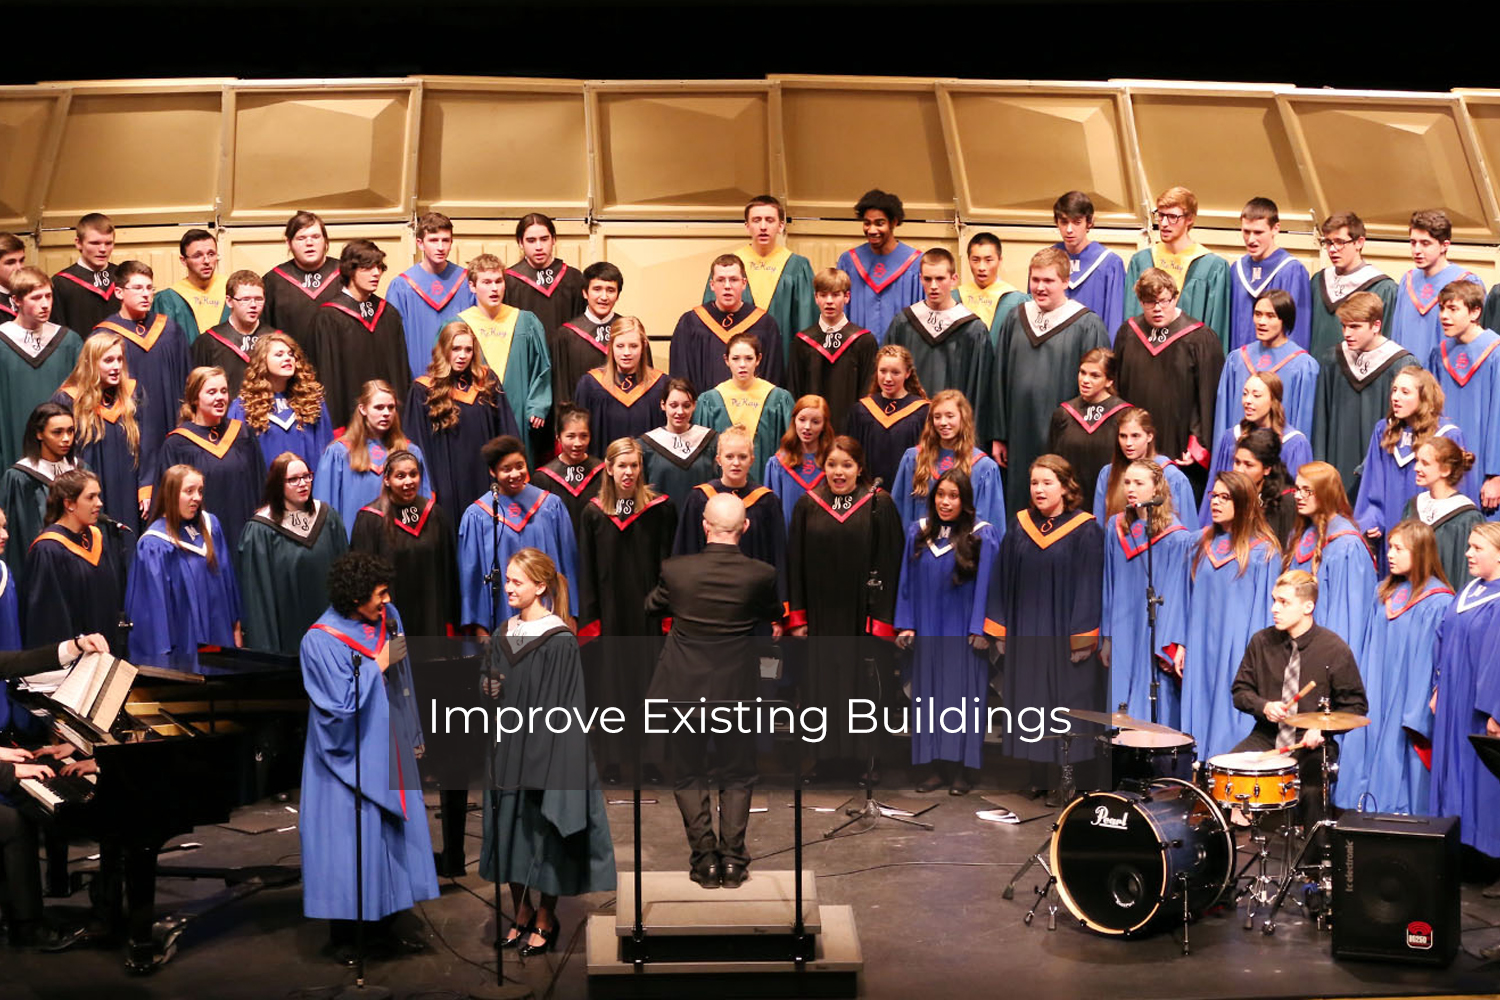 All City High School Honor Choir Performing on a stage